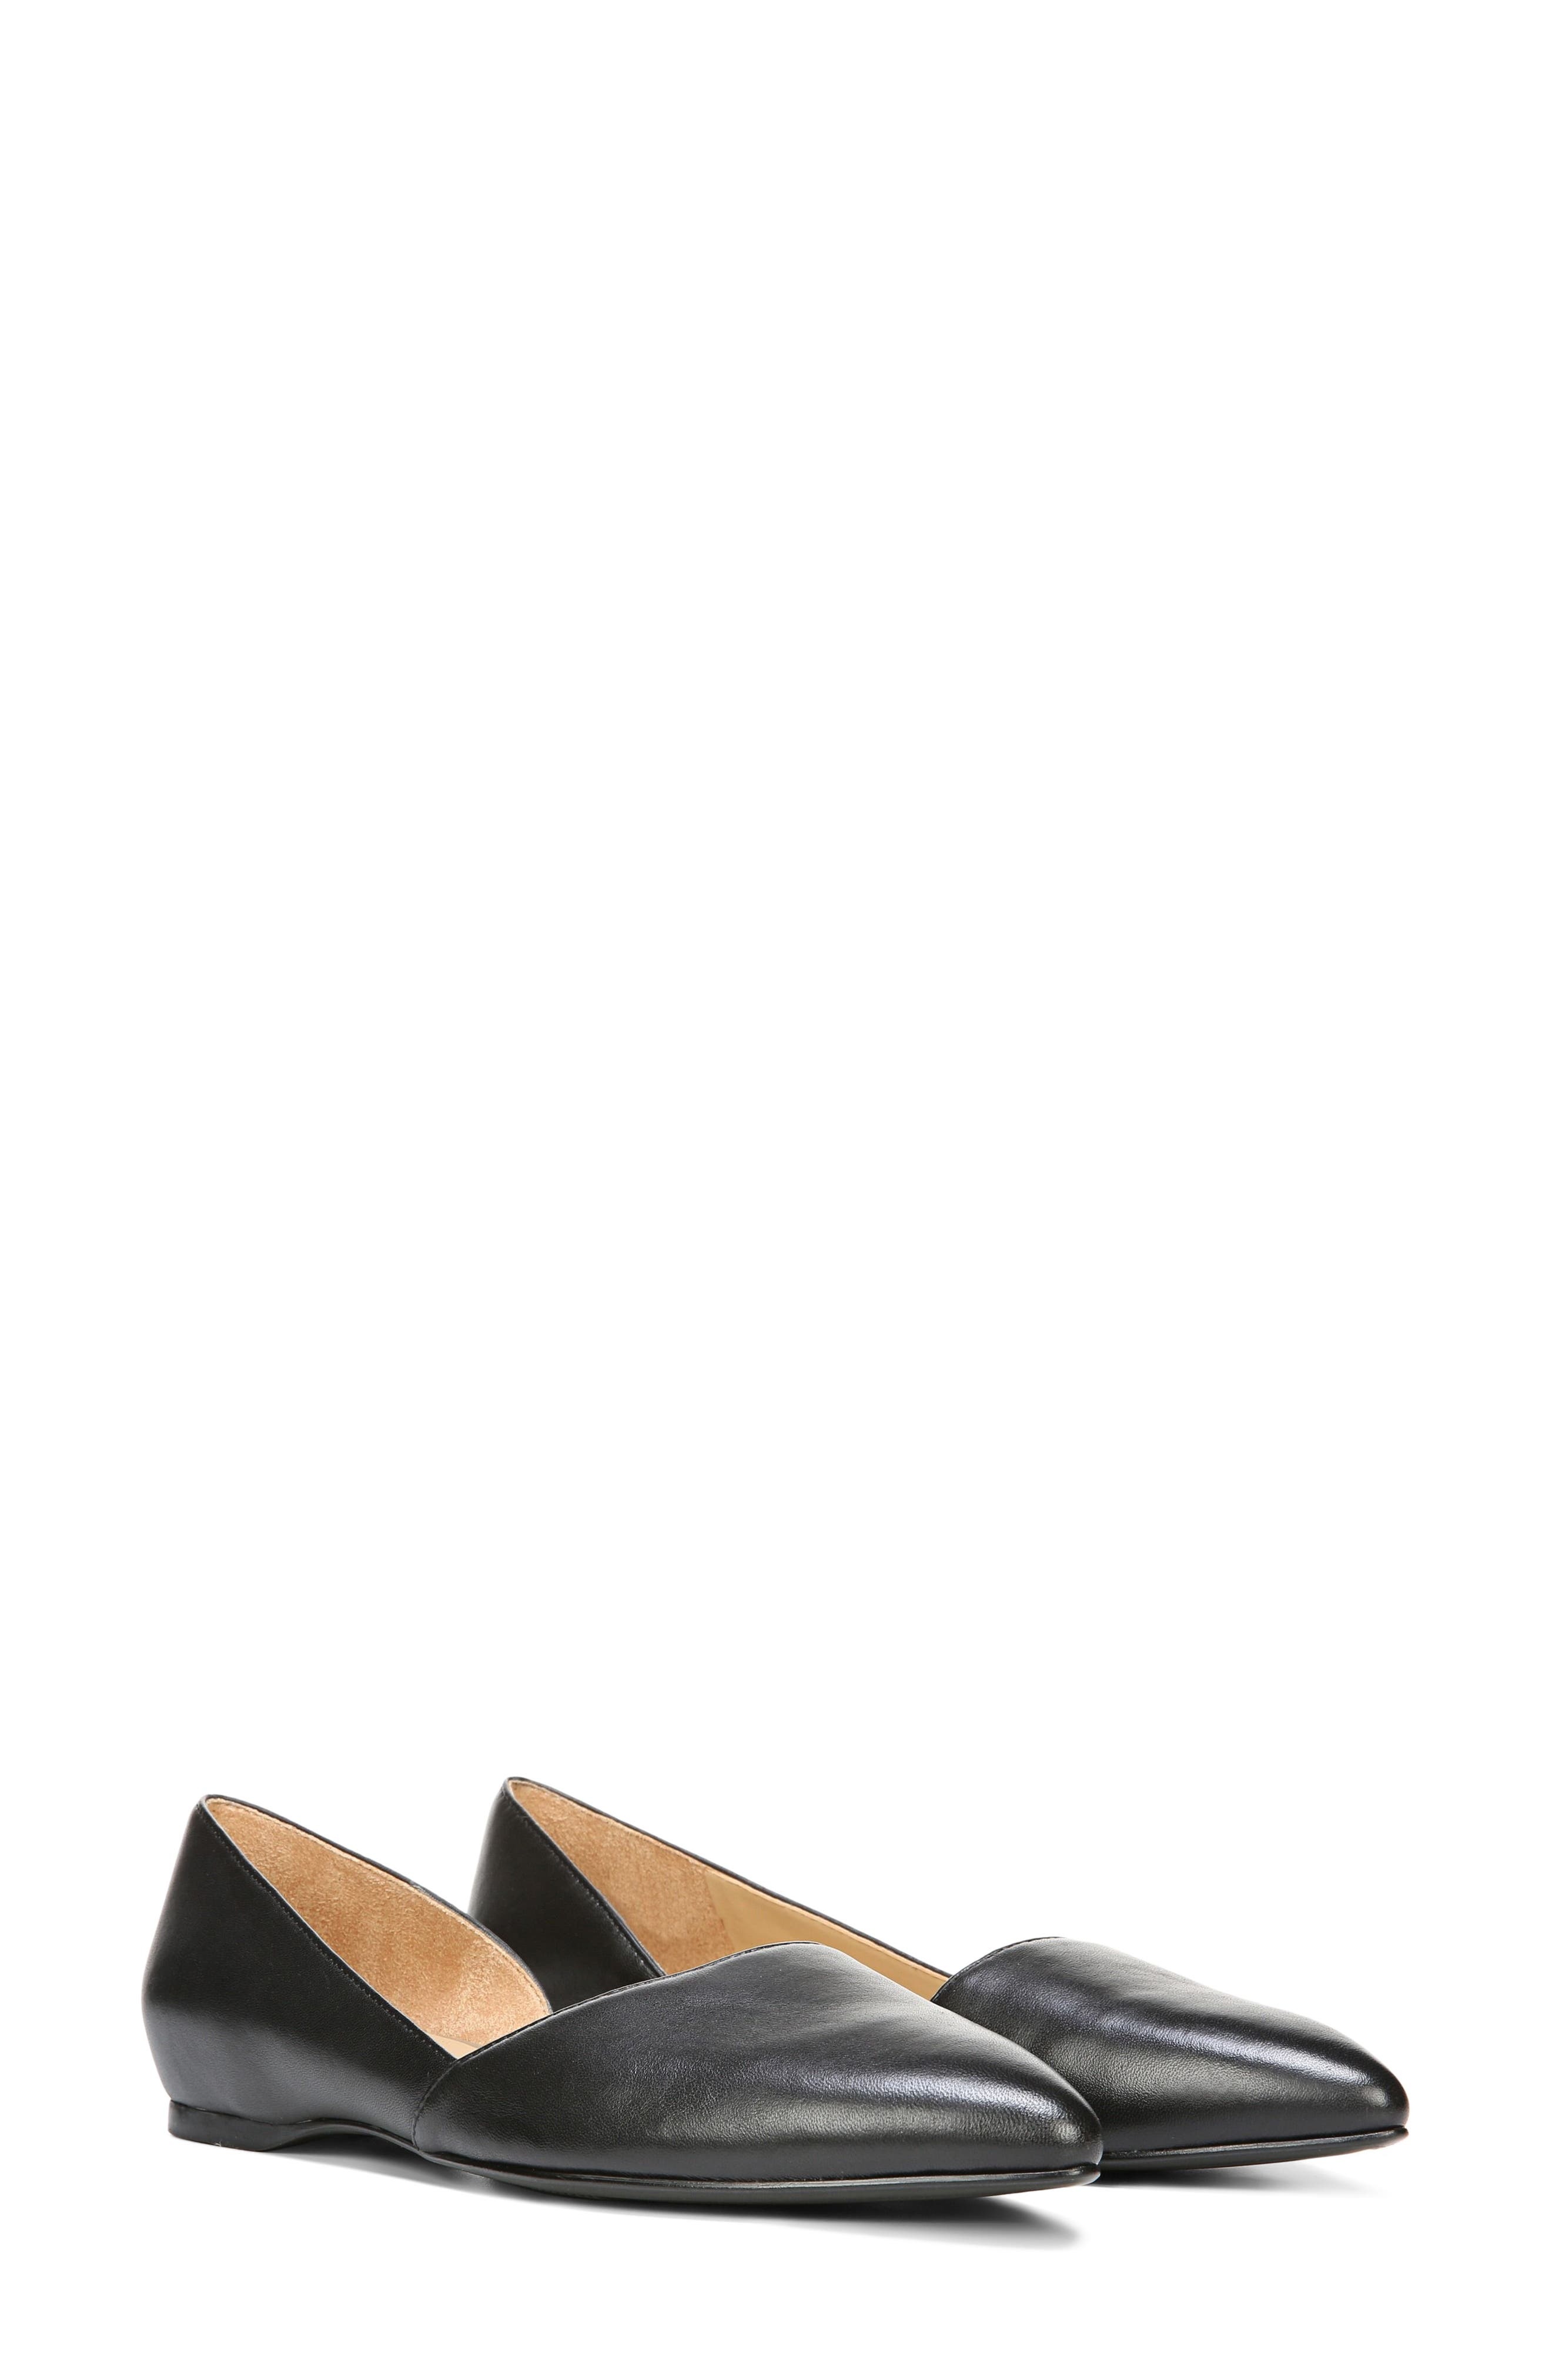 NATURALIZER, Samantha Half d'Orsay Flat, Alternate thumbnail 5, color, BLACK LEATHER